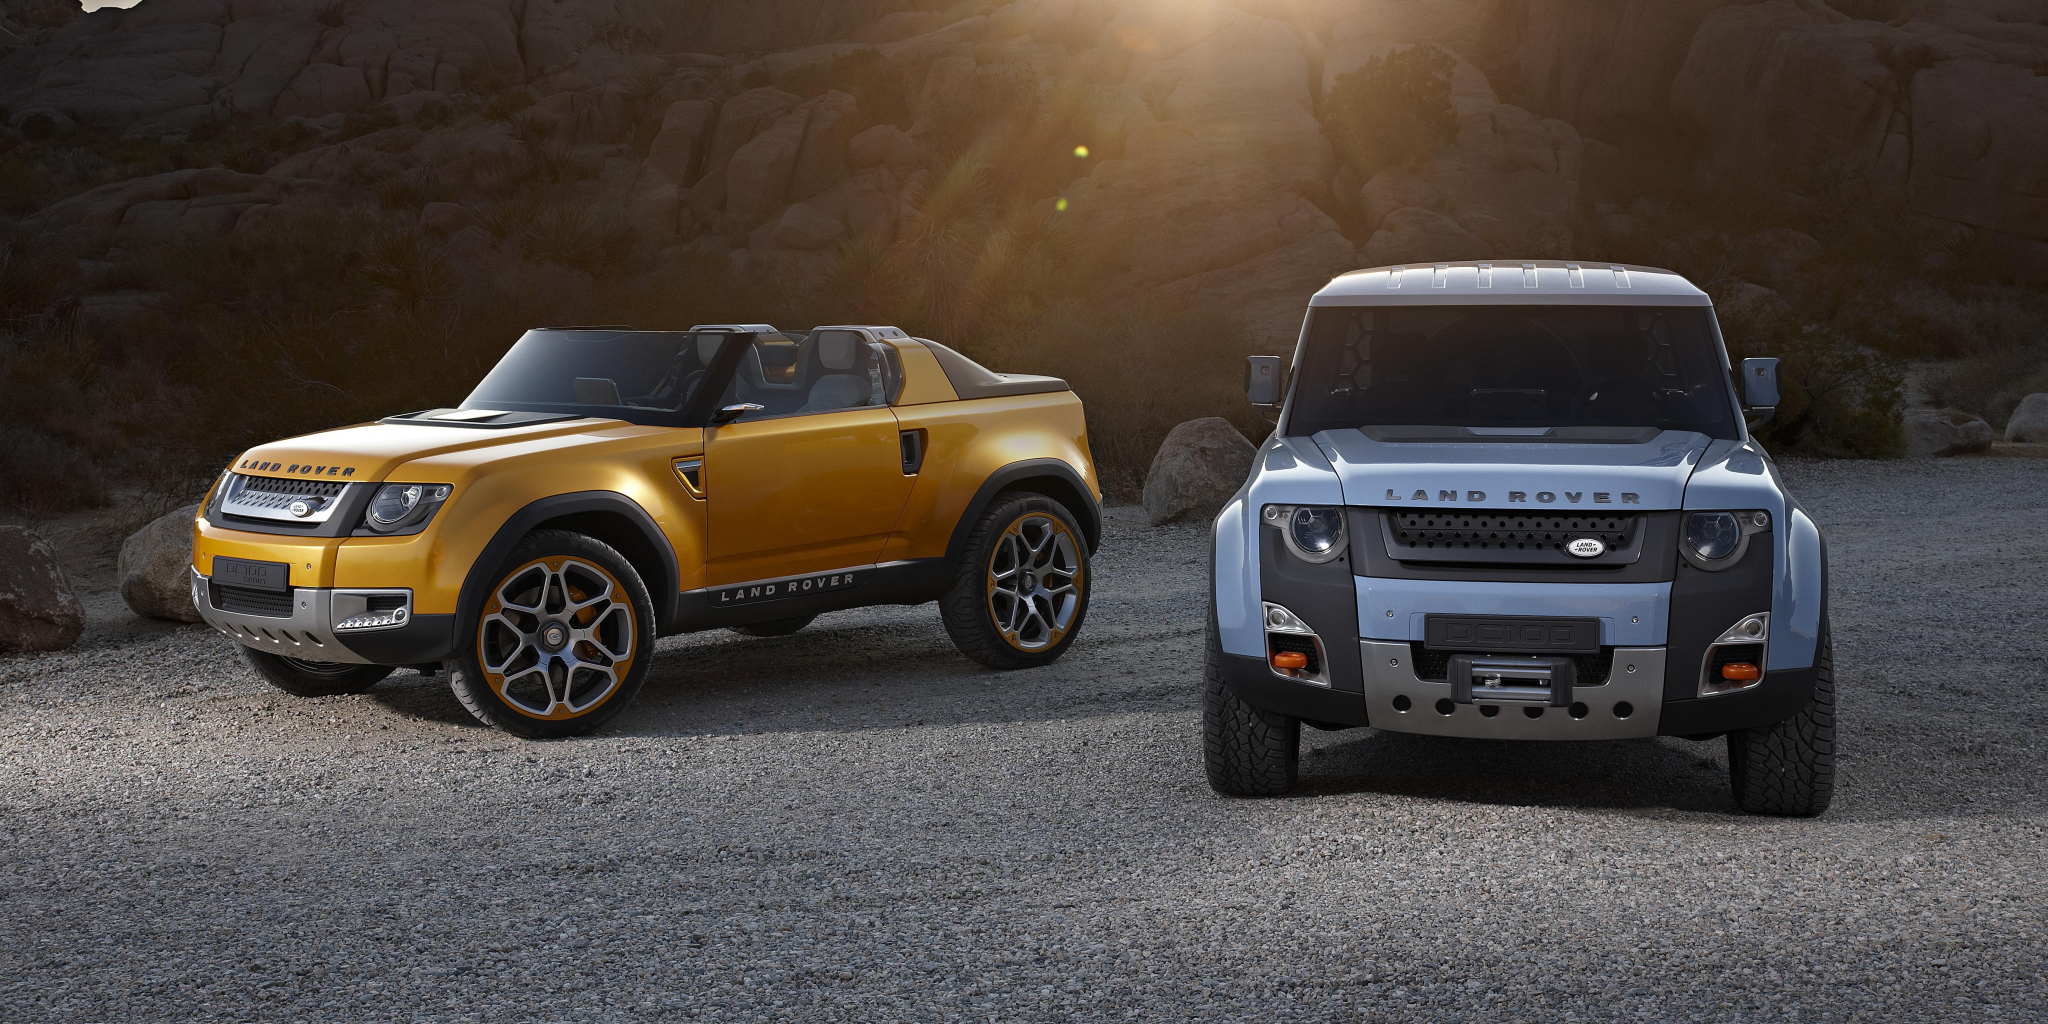 Land Rover Defender 2018 HD wallpapers free download